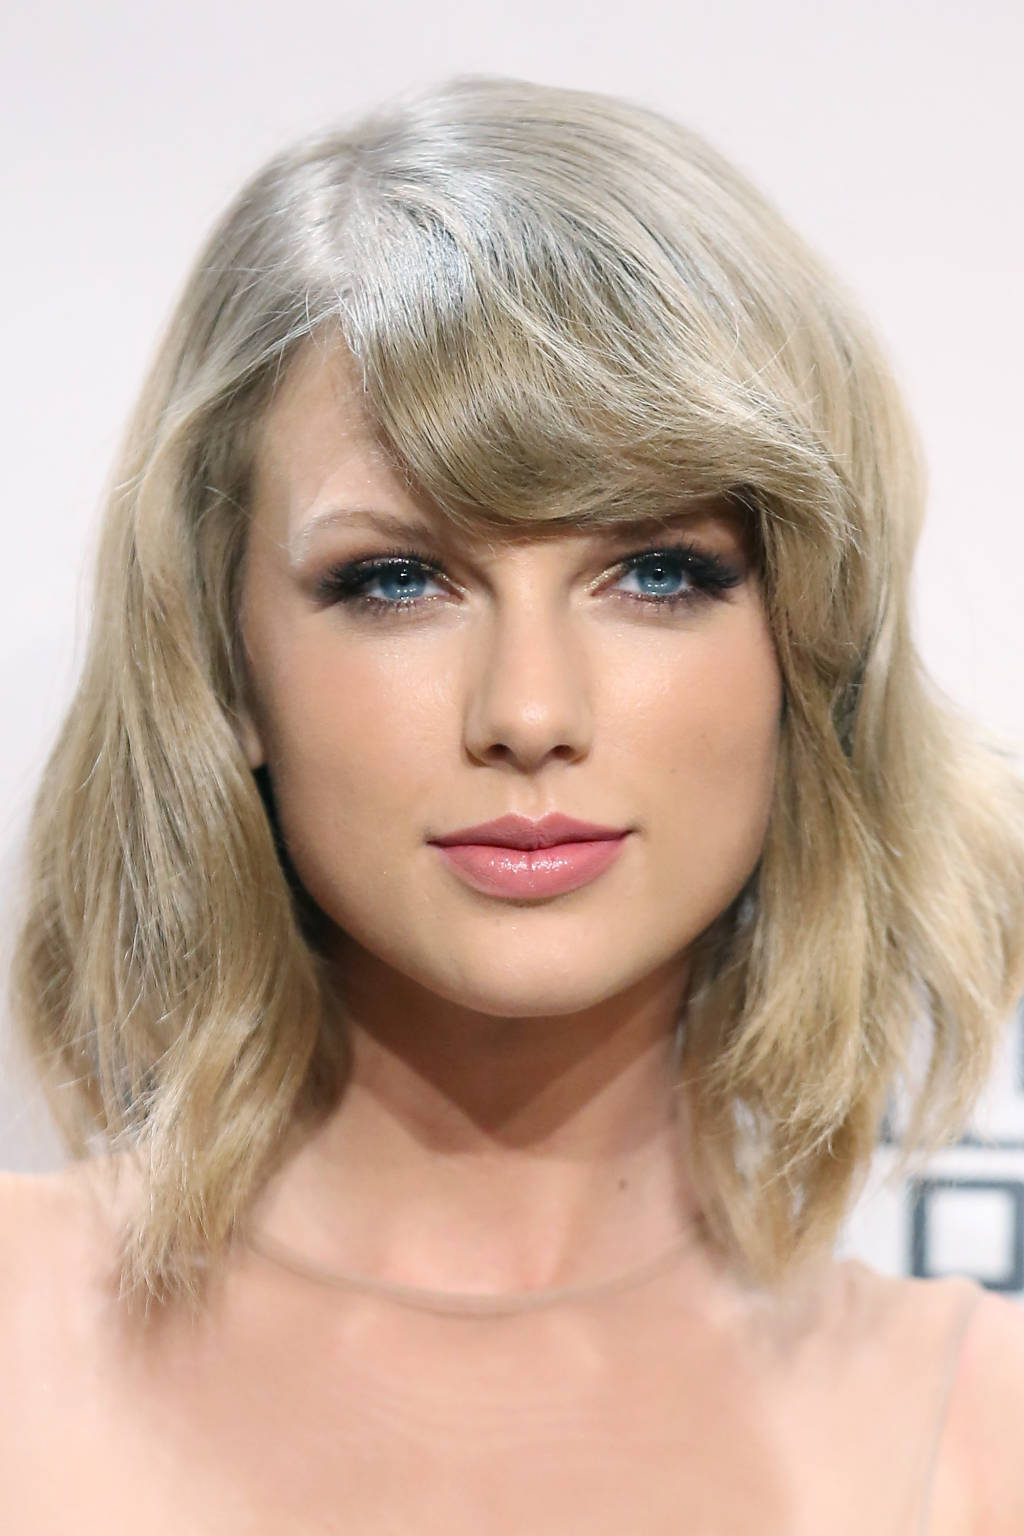 Taylor-Swift-Hairstyles-2015-8